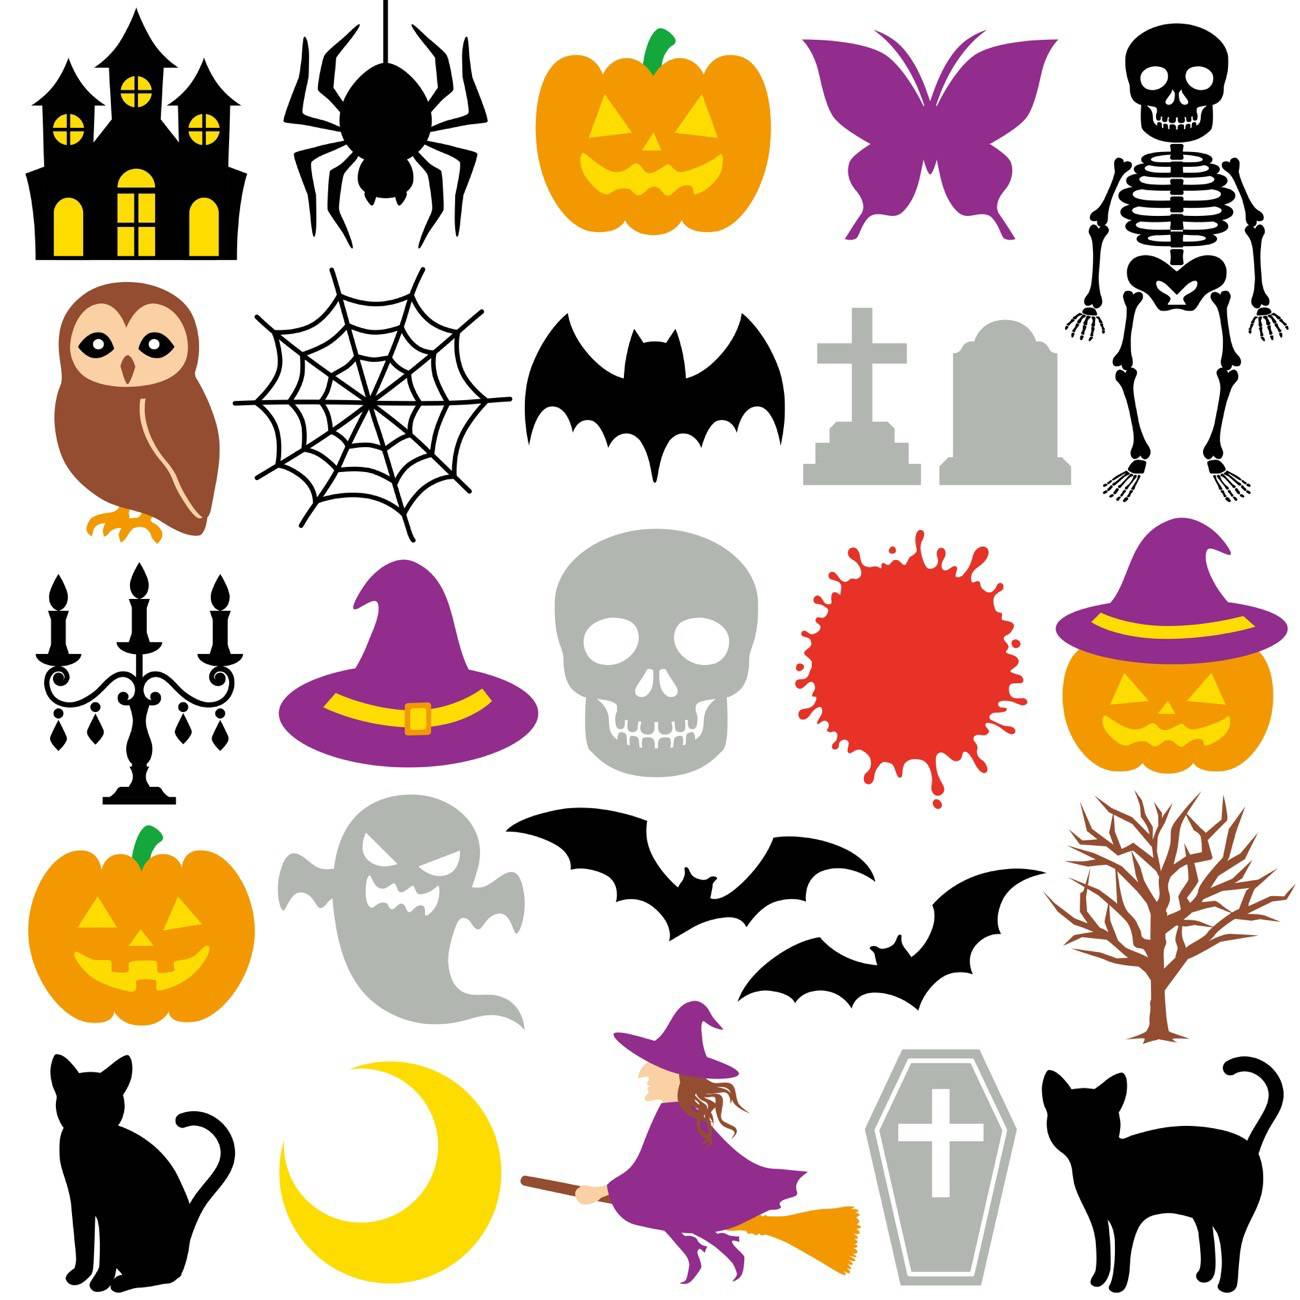 decorar tu jardin en Halloween - recortables de halloween para ninos